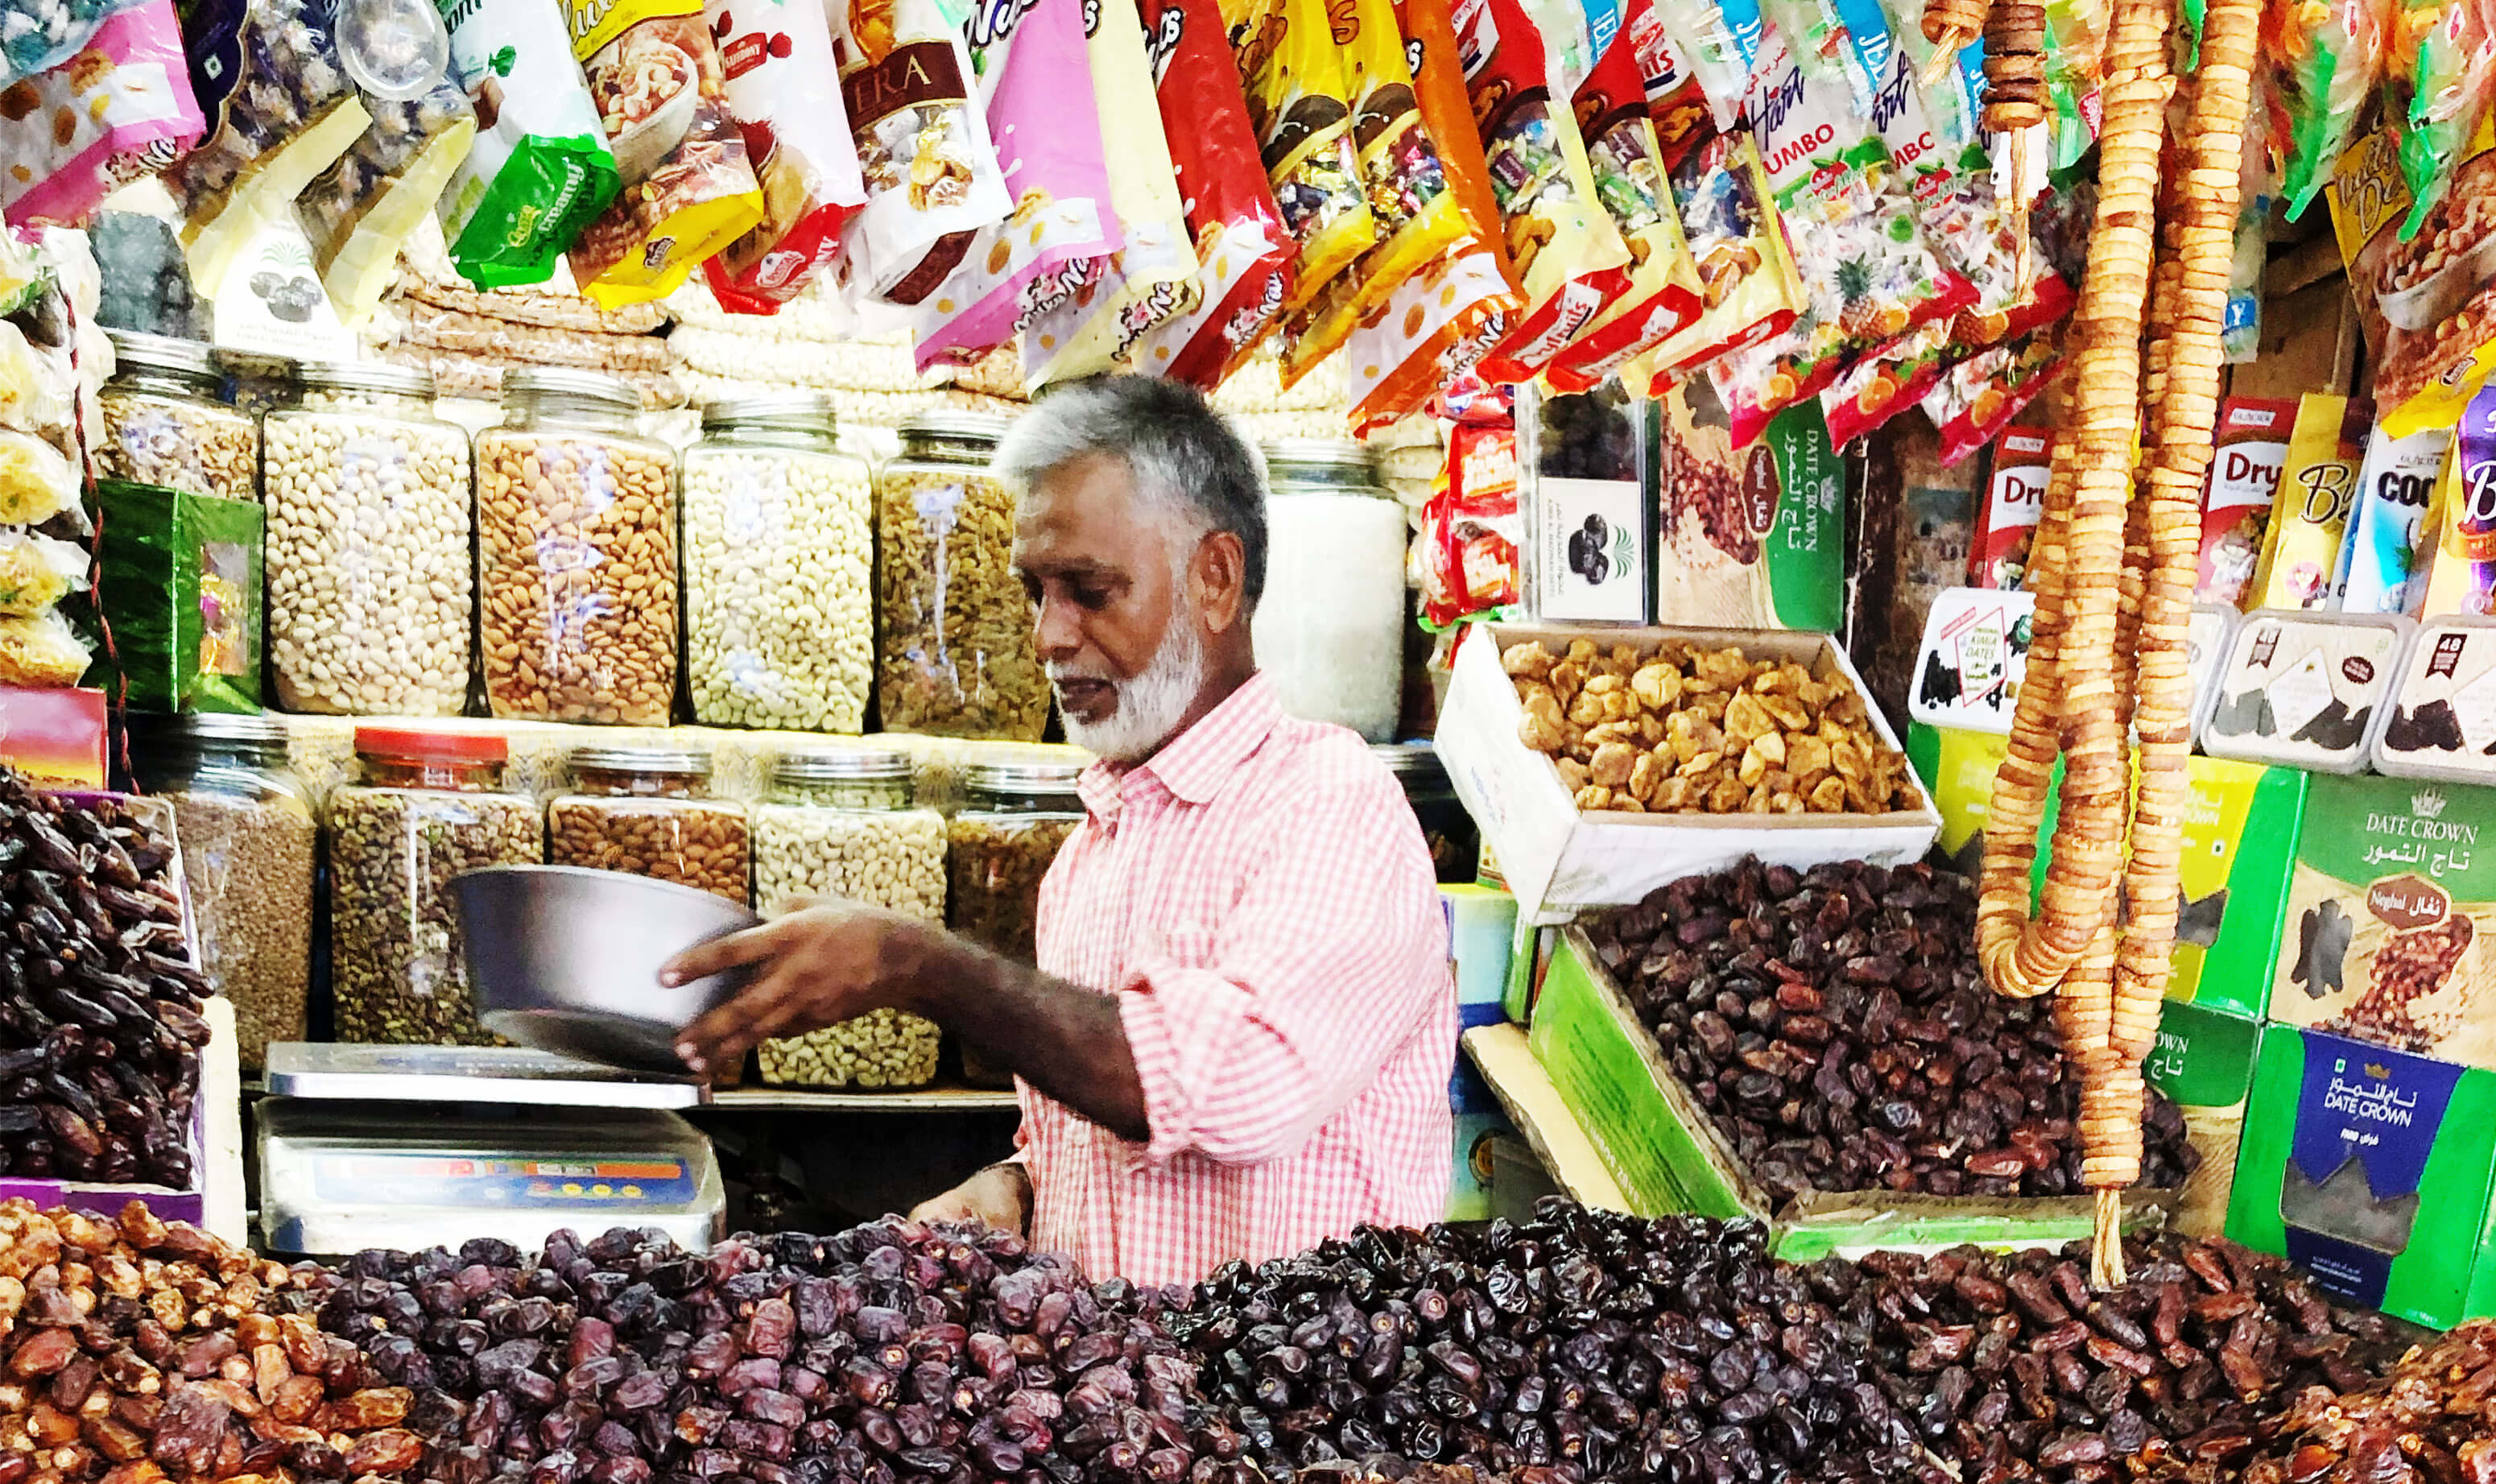 An Indian male vendor in a pink shirt selling dried fruits and other dry goods in his store in Mumbai